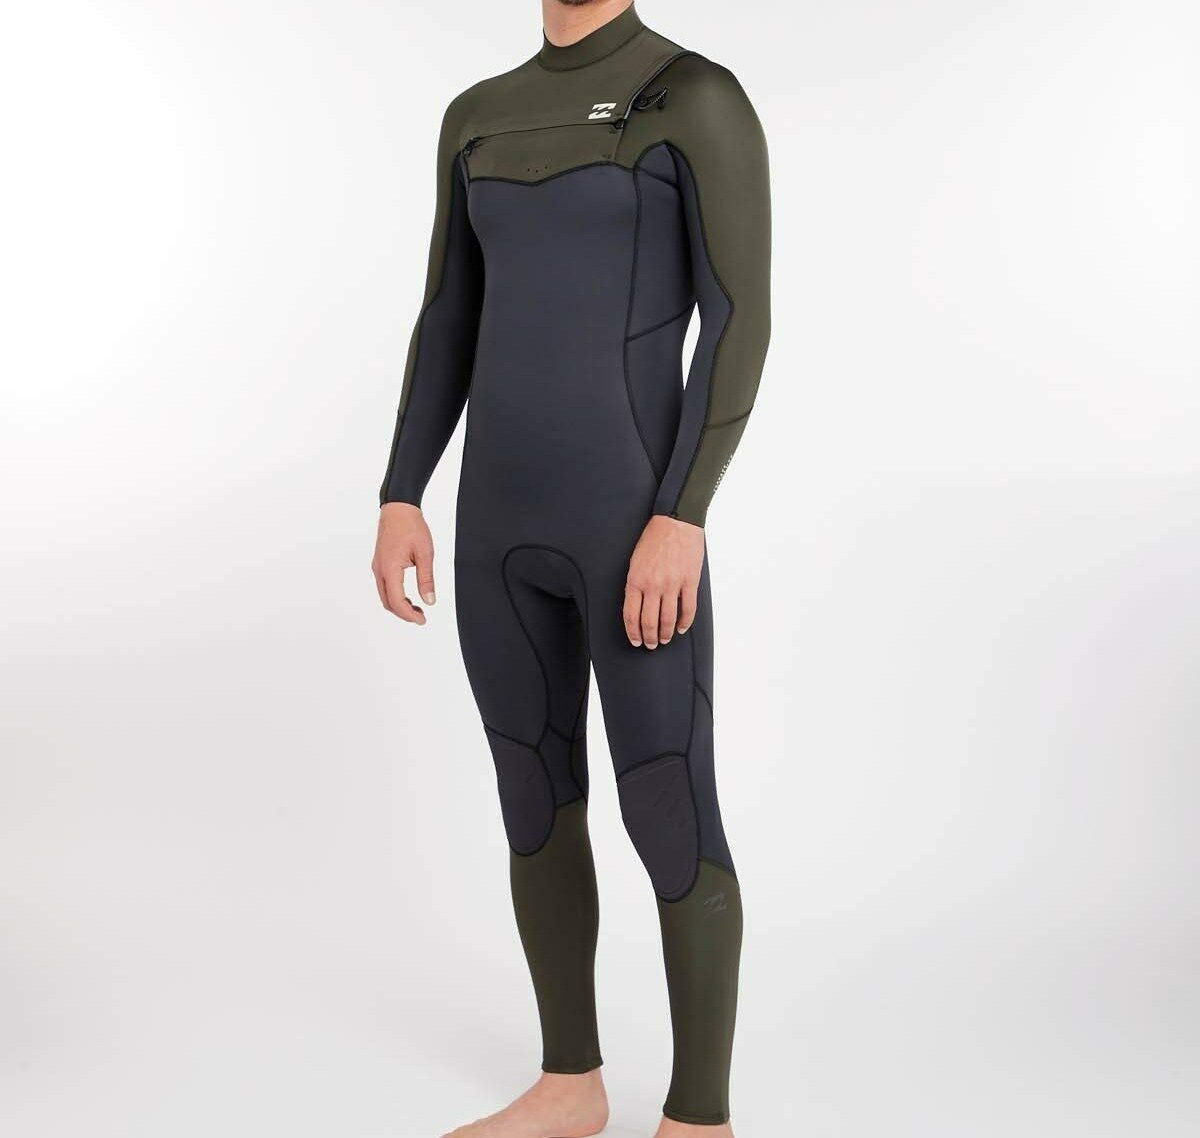 BILLABONG Men's 3 2 FURNACE ABSOLUTE CZ  Wetsuit - DKO - Medium Tall - NWT  ultra-low prices